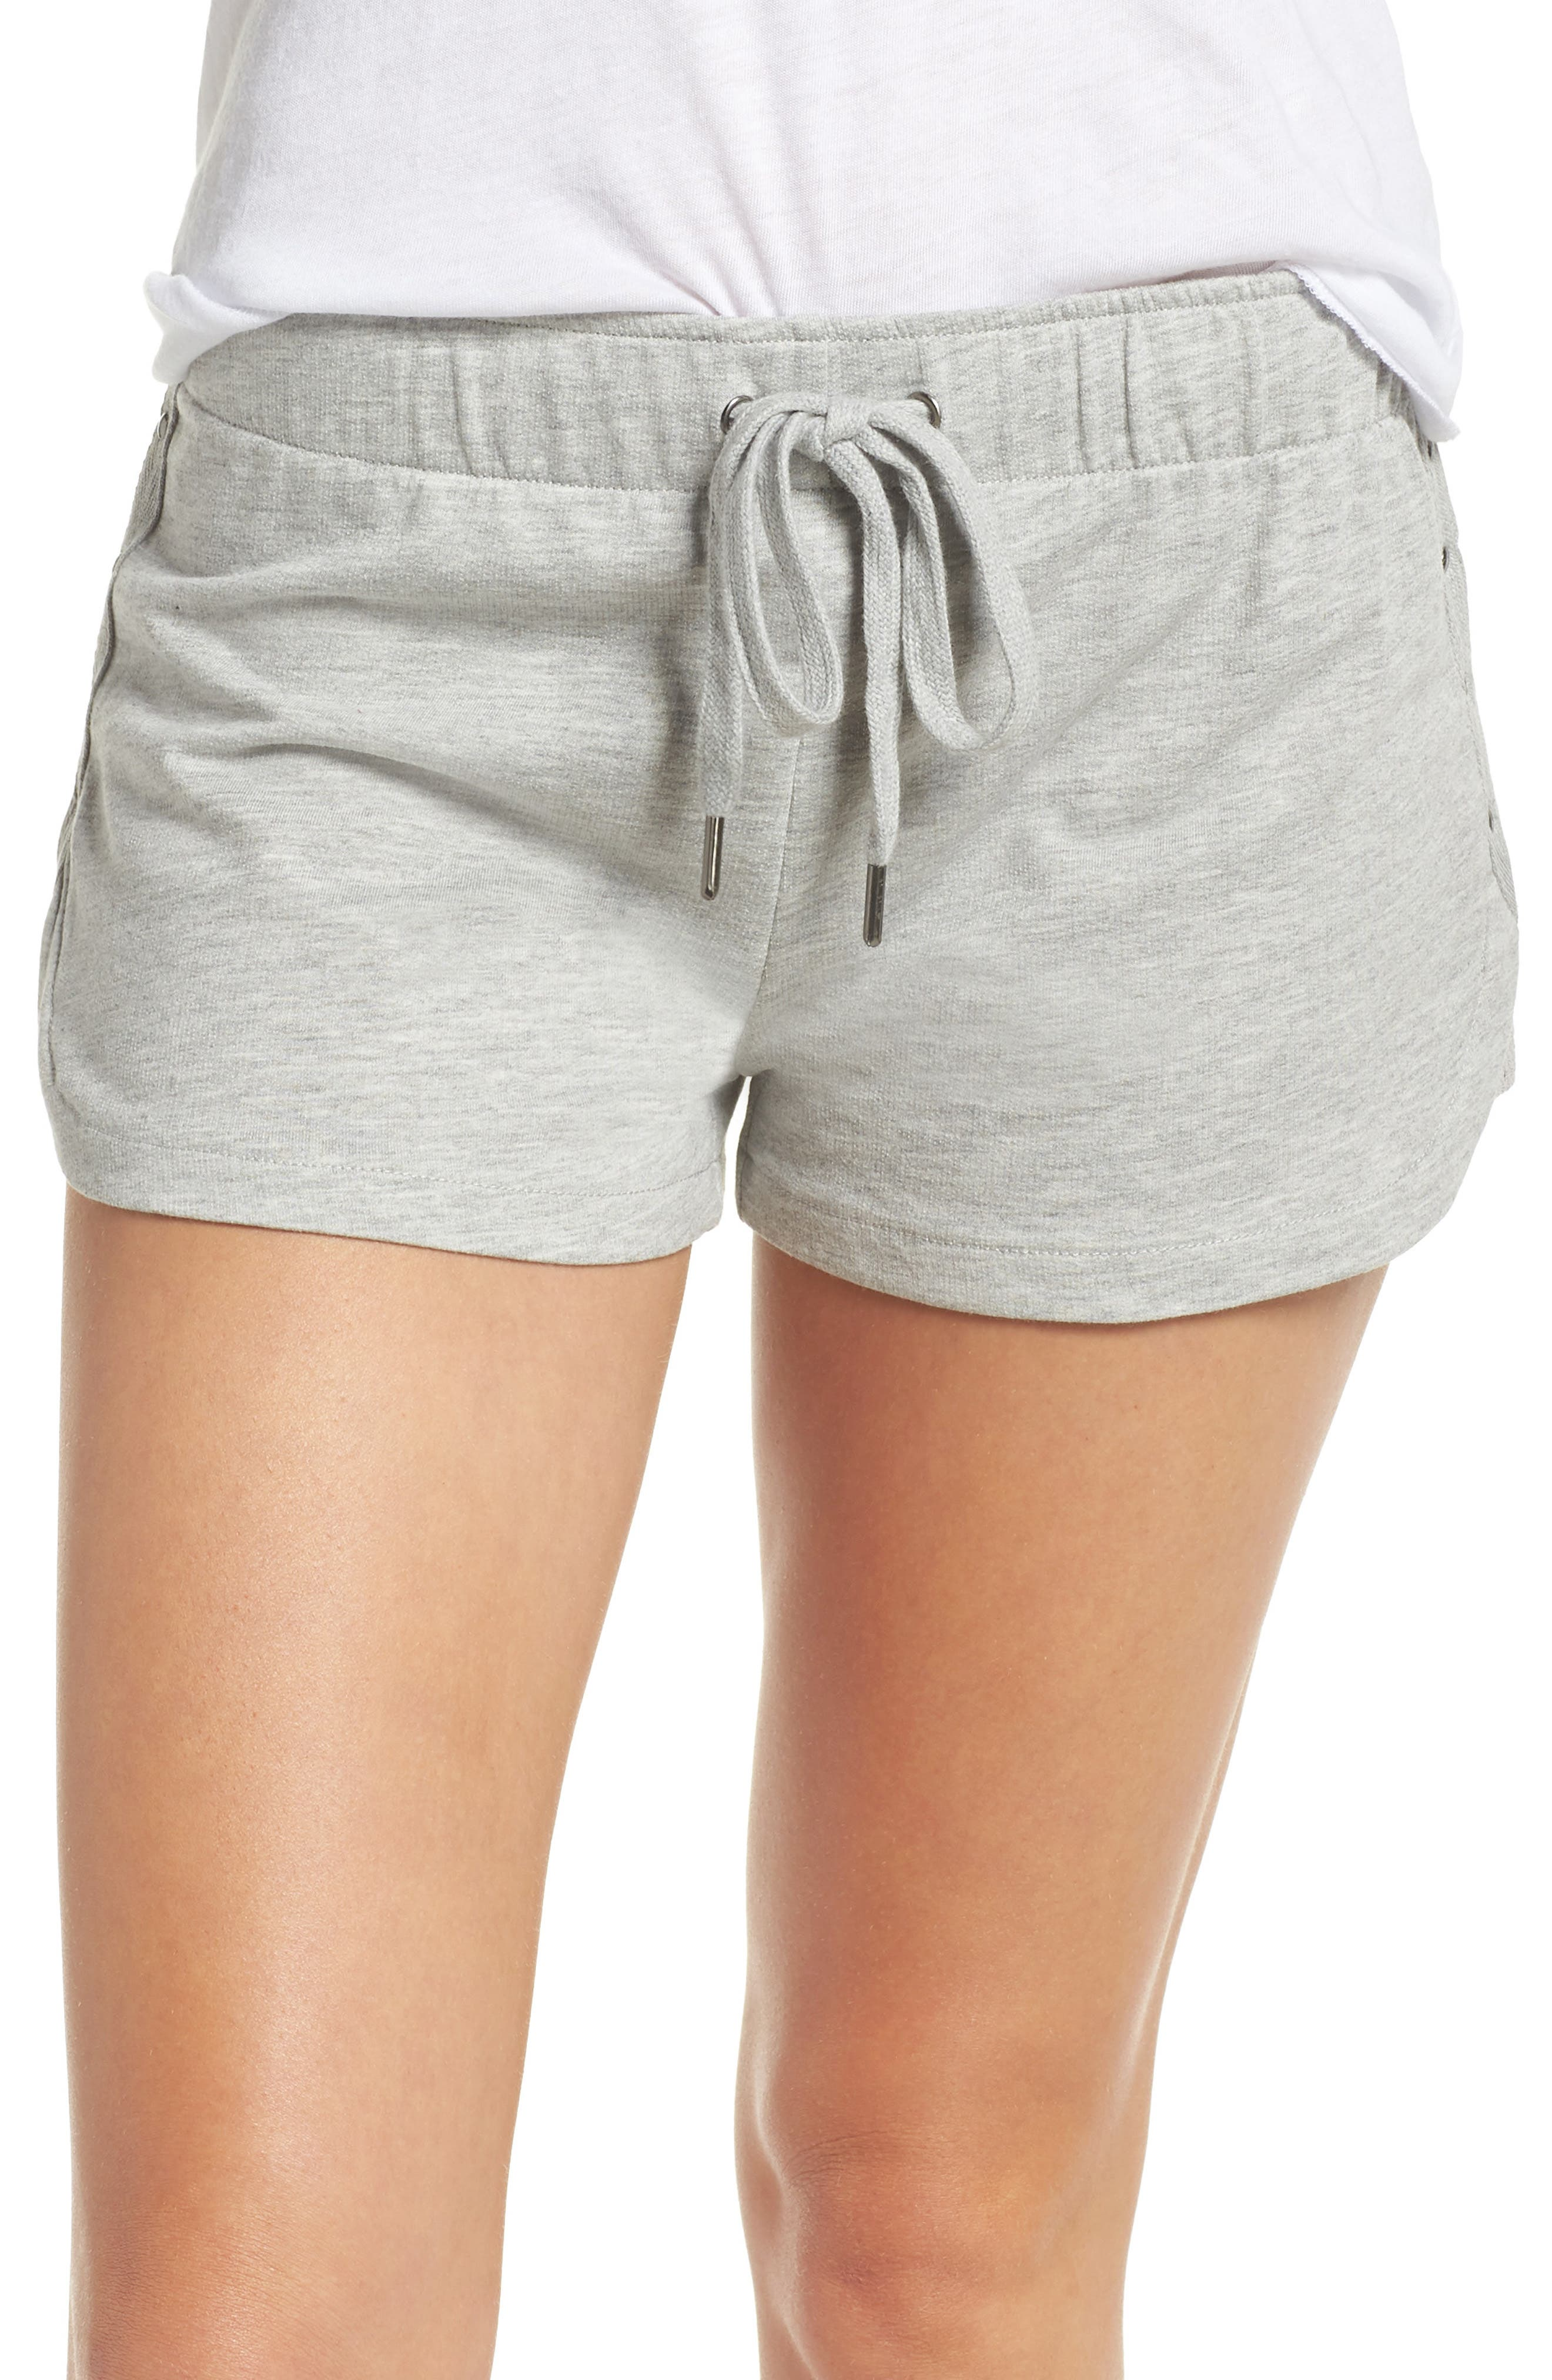 Pajama Shorts,                             Main thumbnail 1, color,                             H Grey